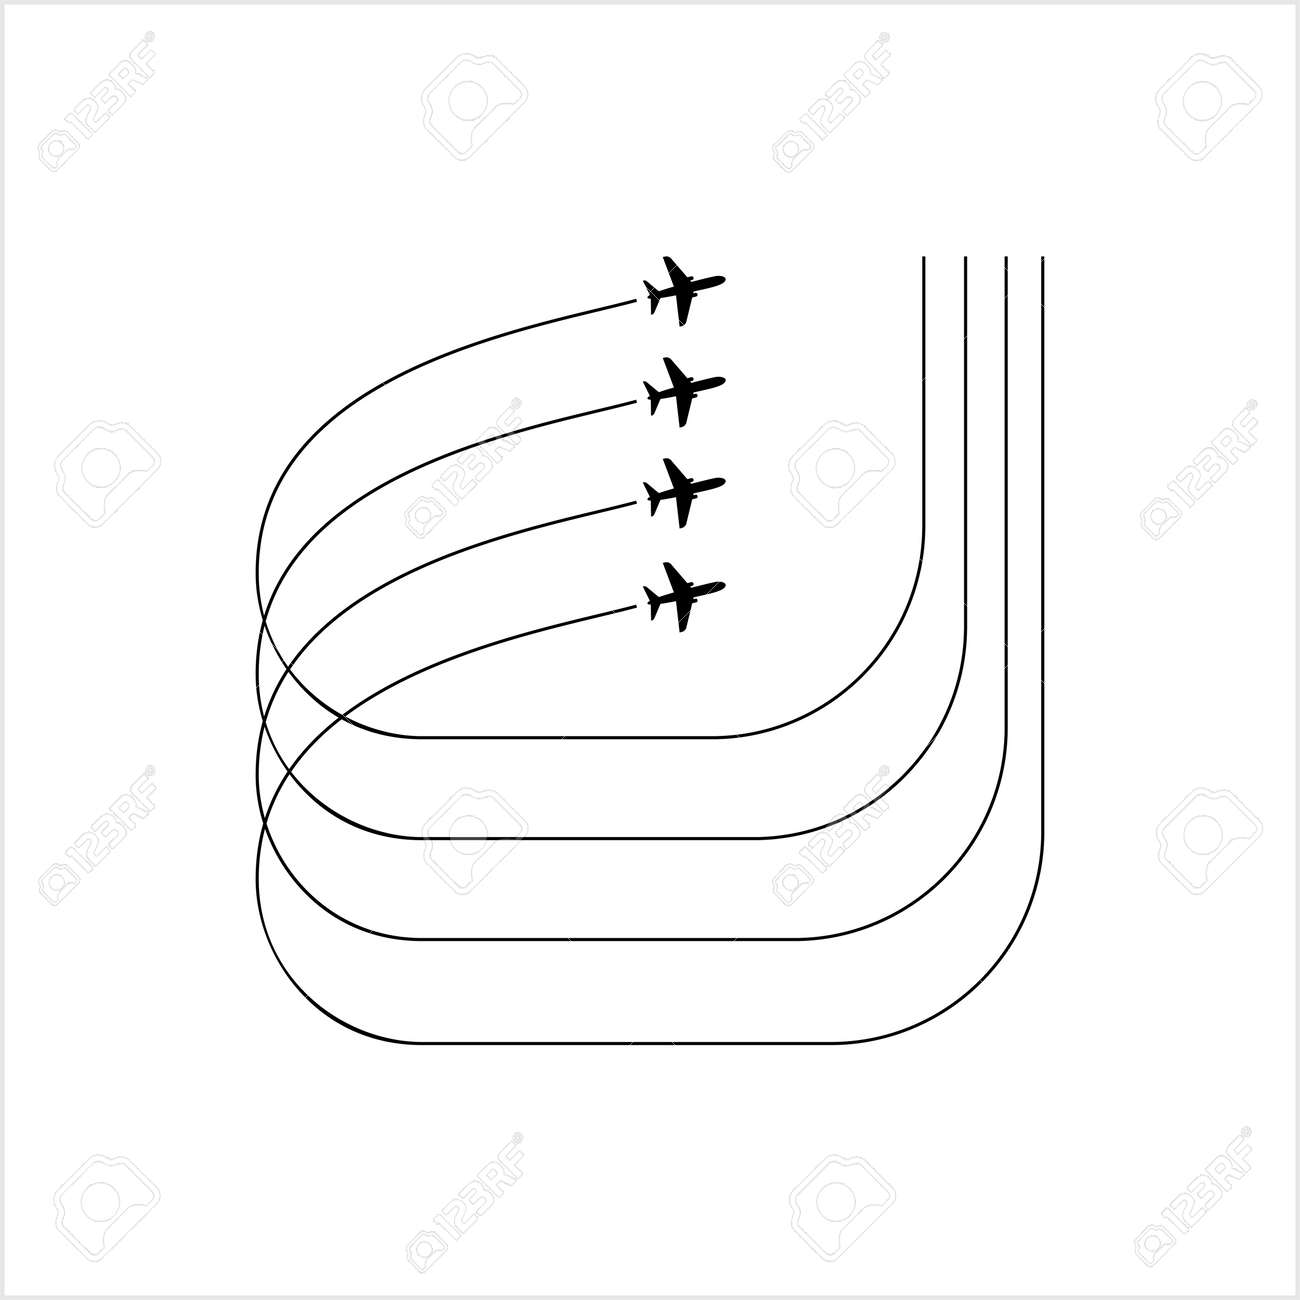 Airplane Flying Formation, Air Show Display, The Disciplined Flight Vector Art Illustration - 149570936